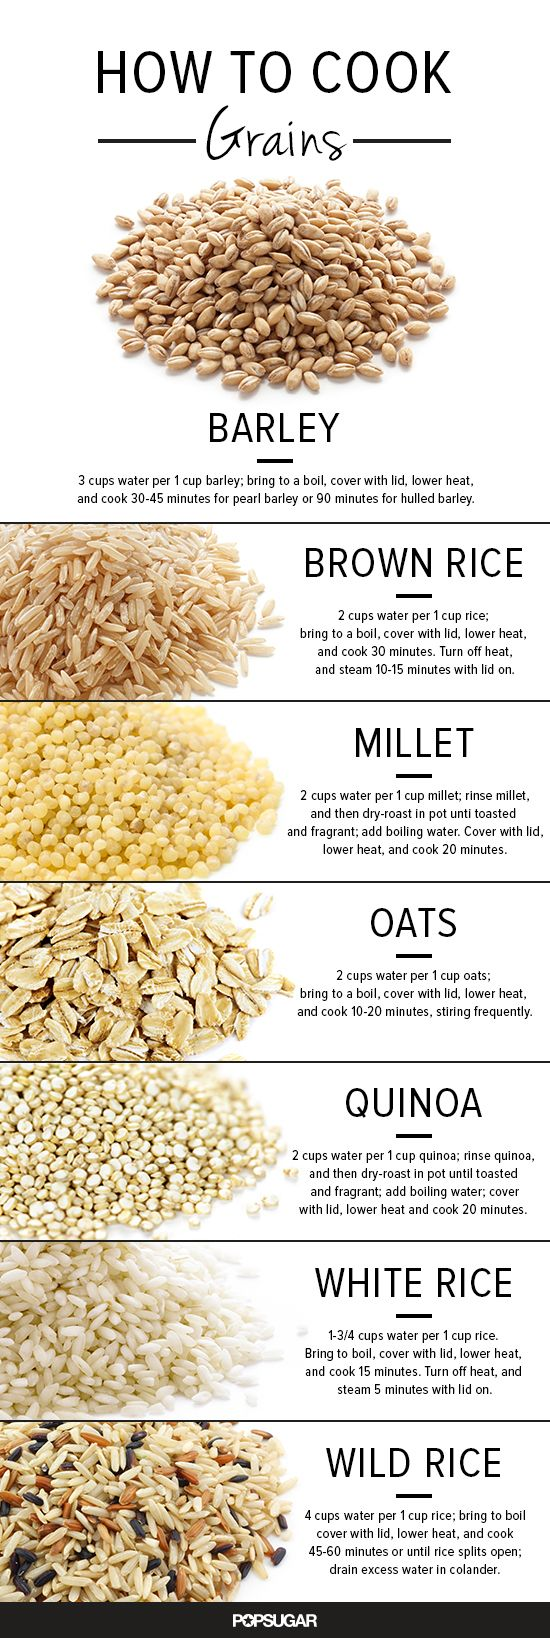 how to cook grains infographic